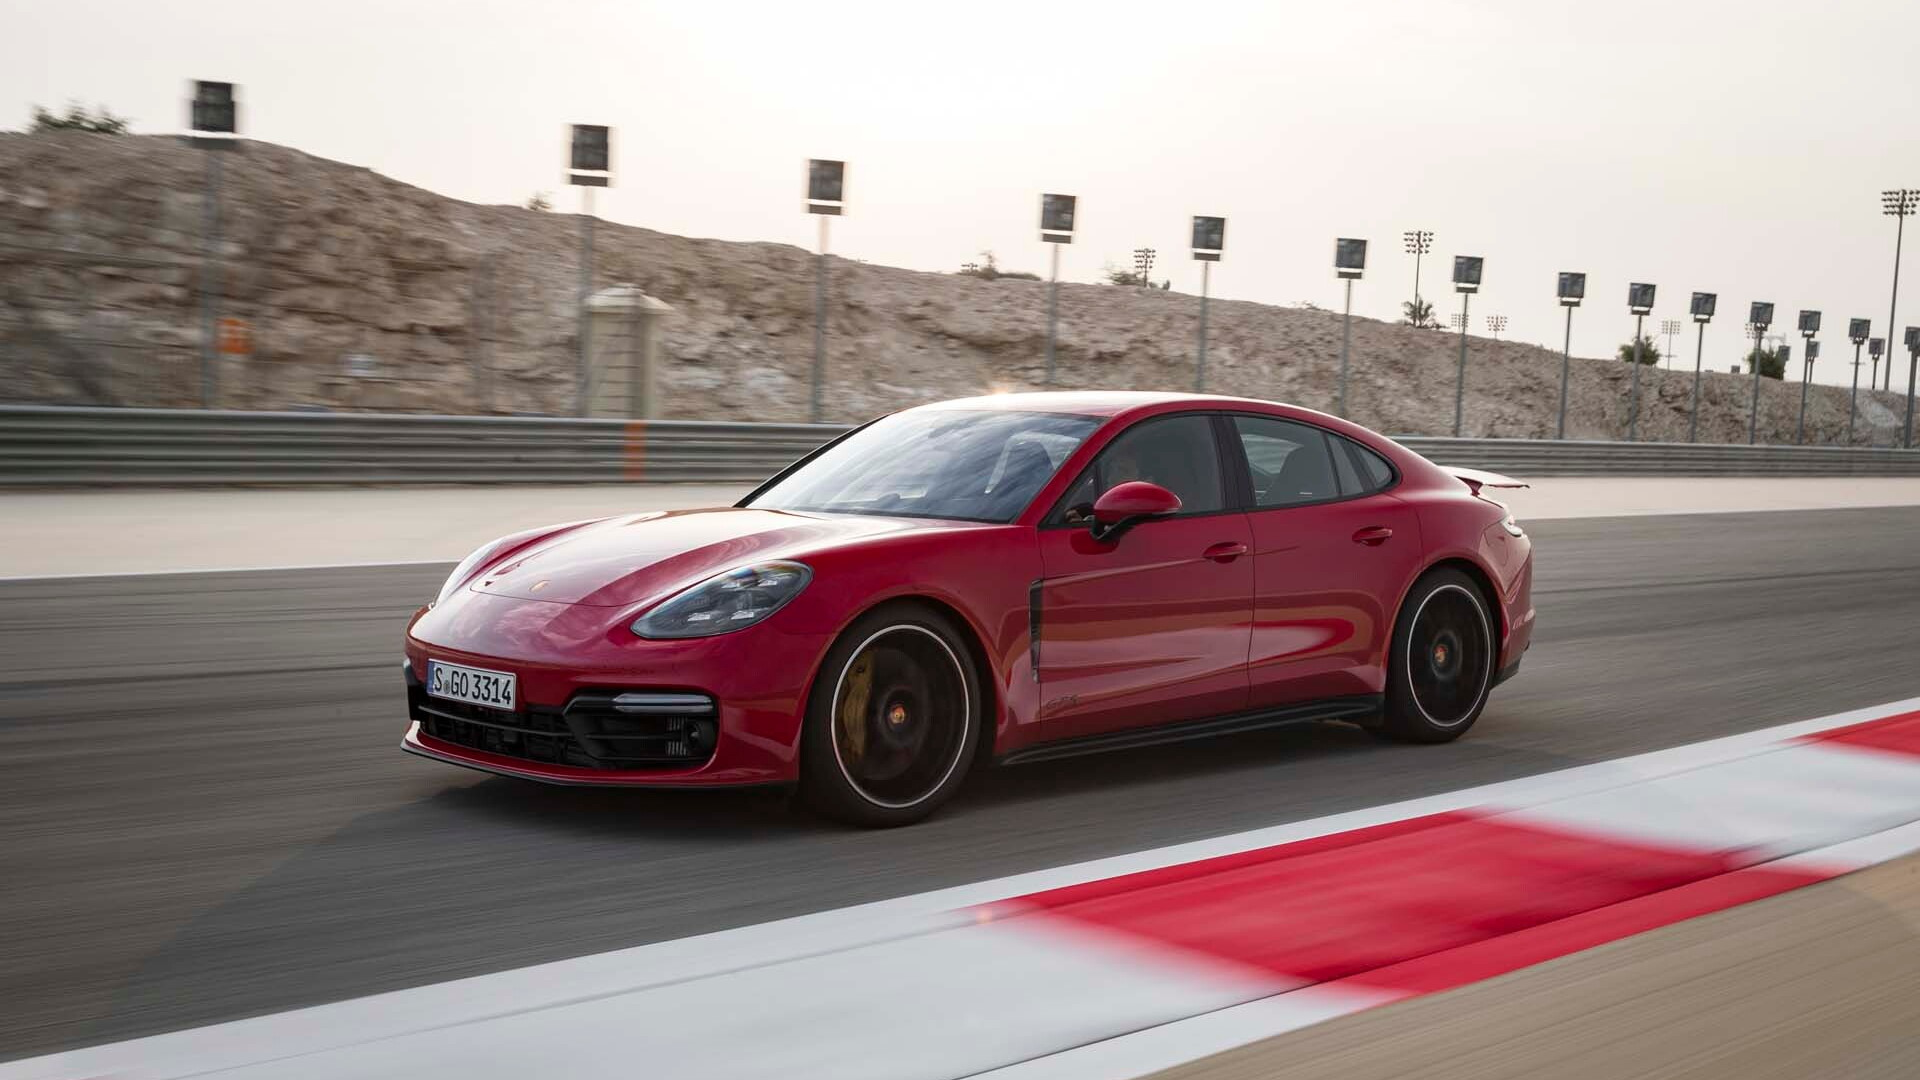 2019 porsche panamera gts first drive review luxury for every occasion